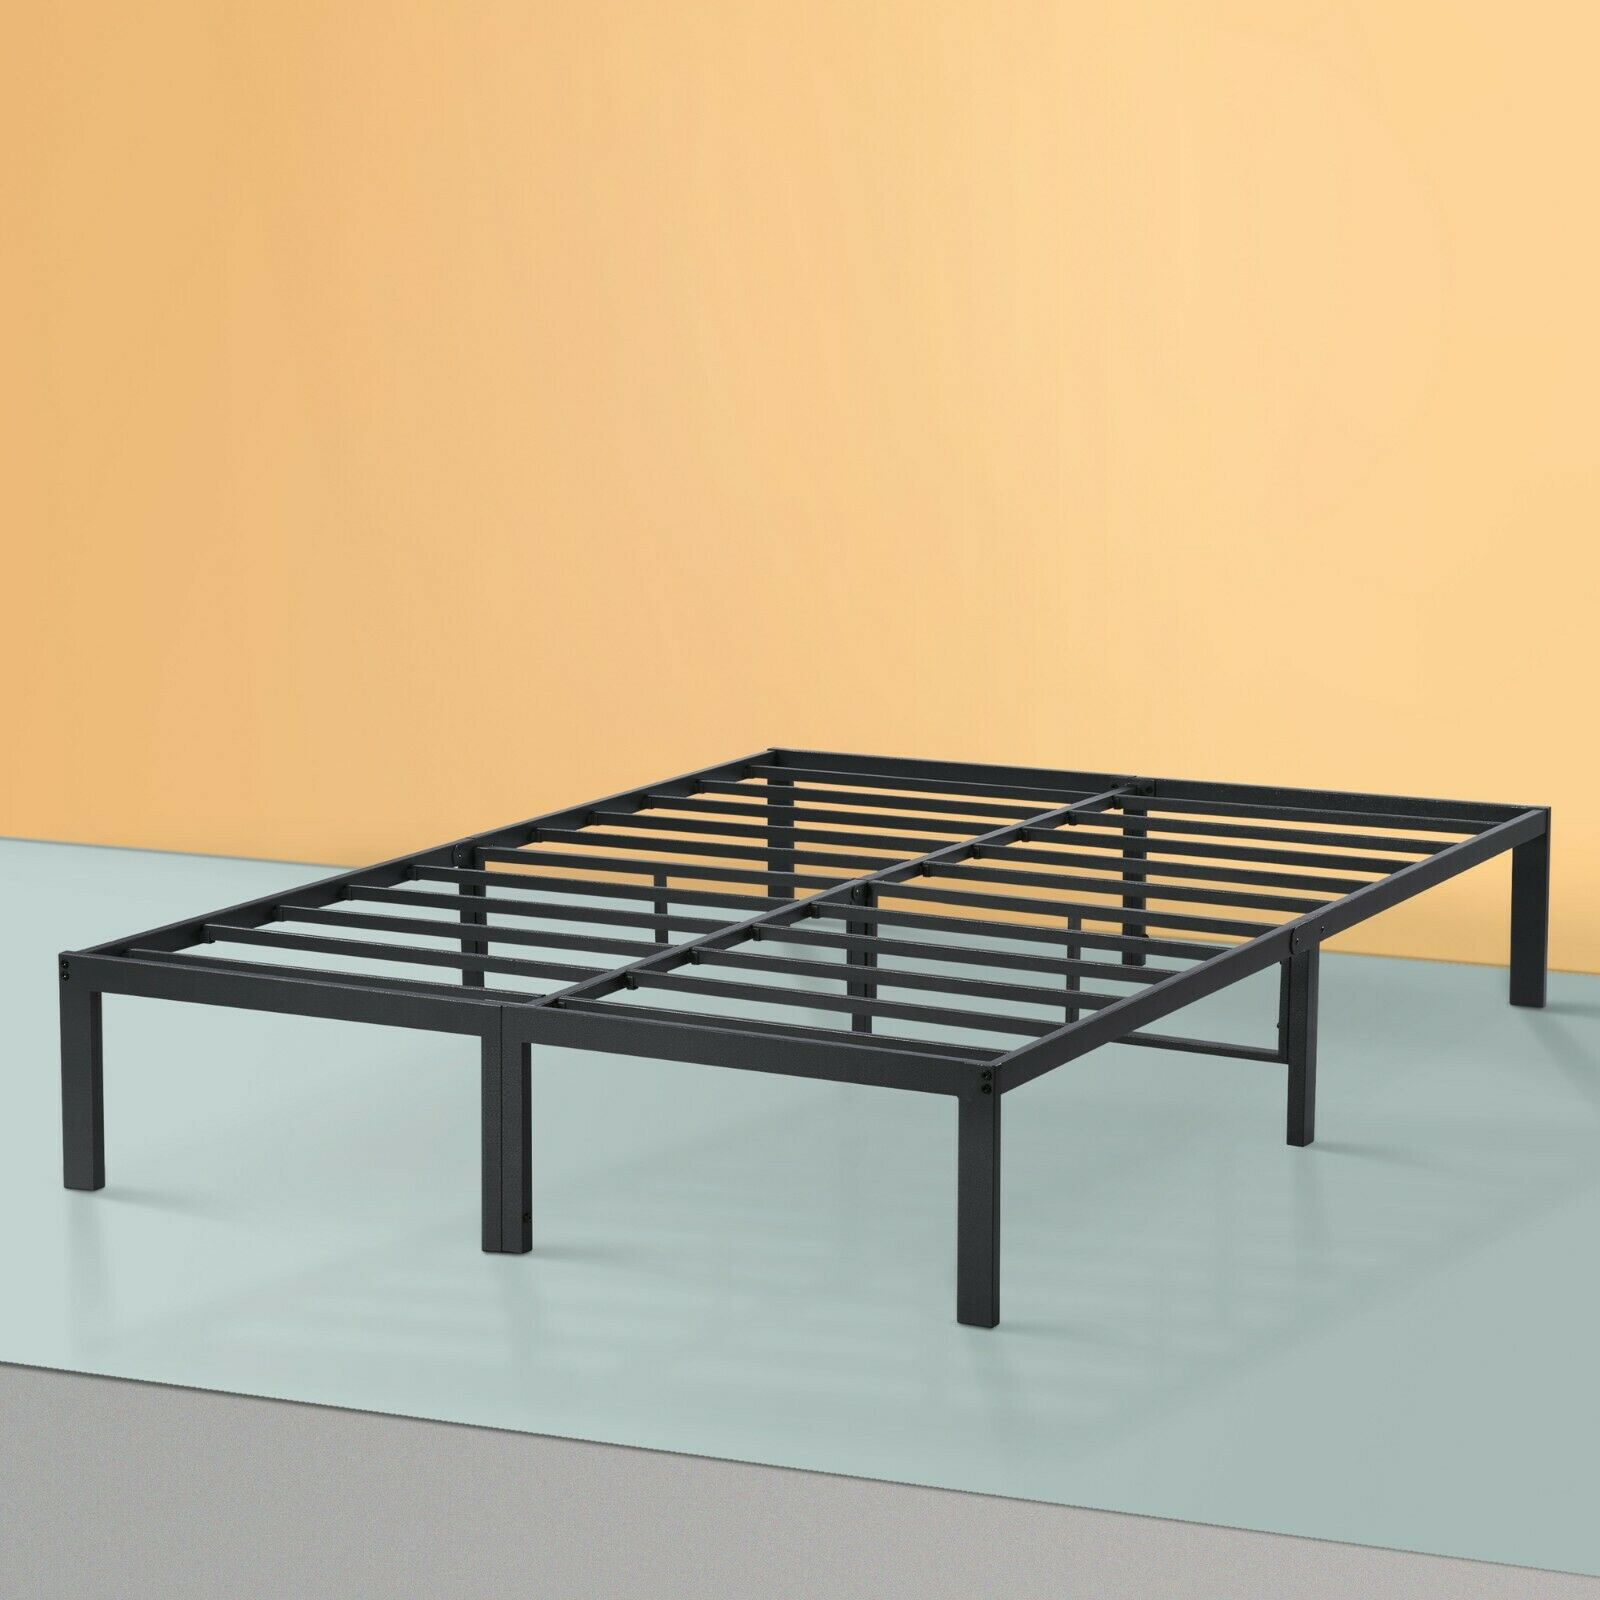 SLEEPLACE Dura Metal Steel Slate Bed Frame - Gray Twin,Full,